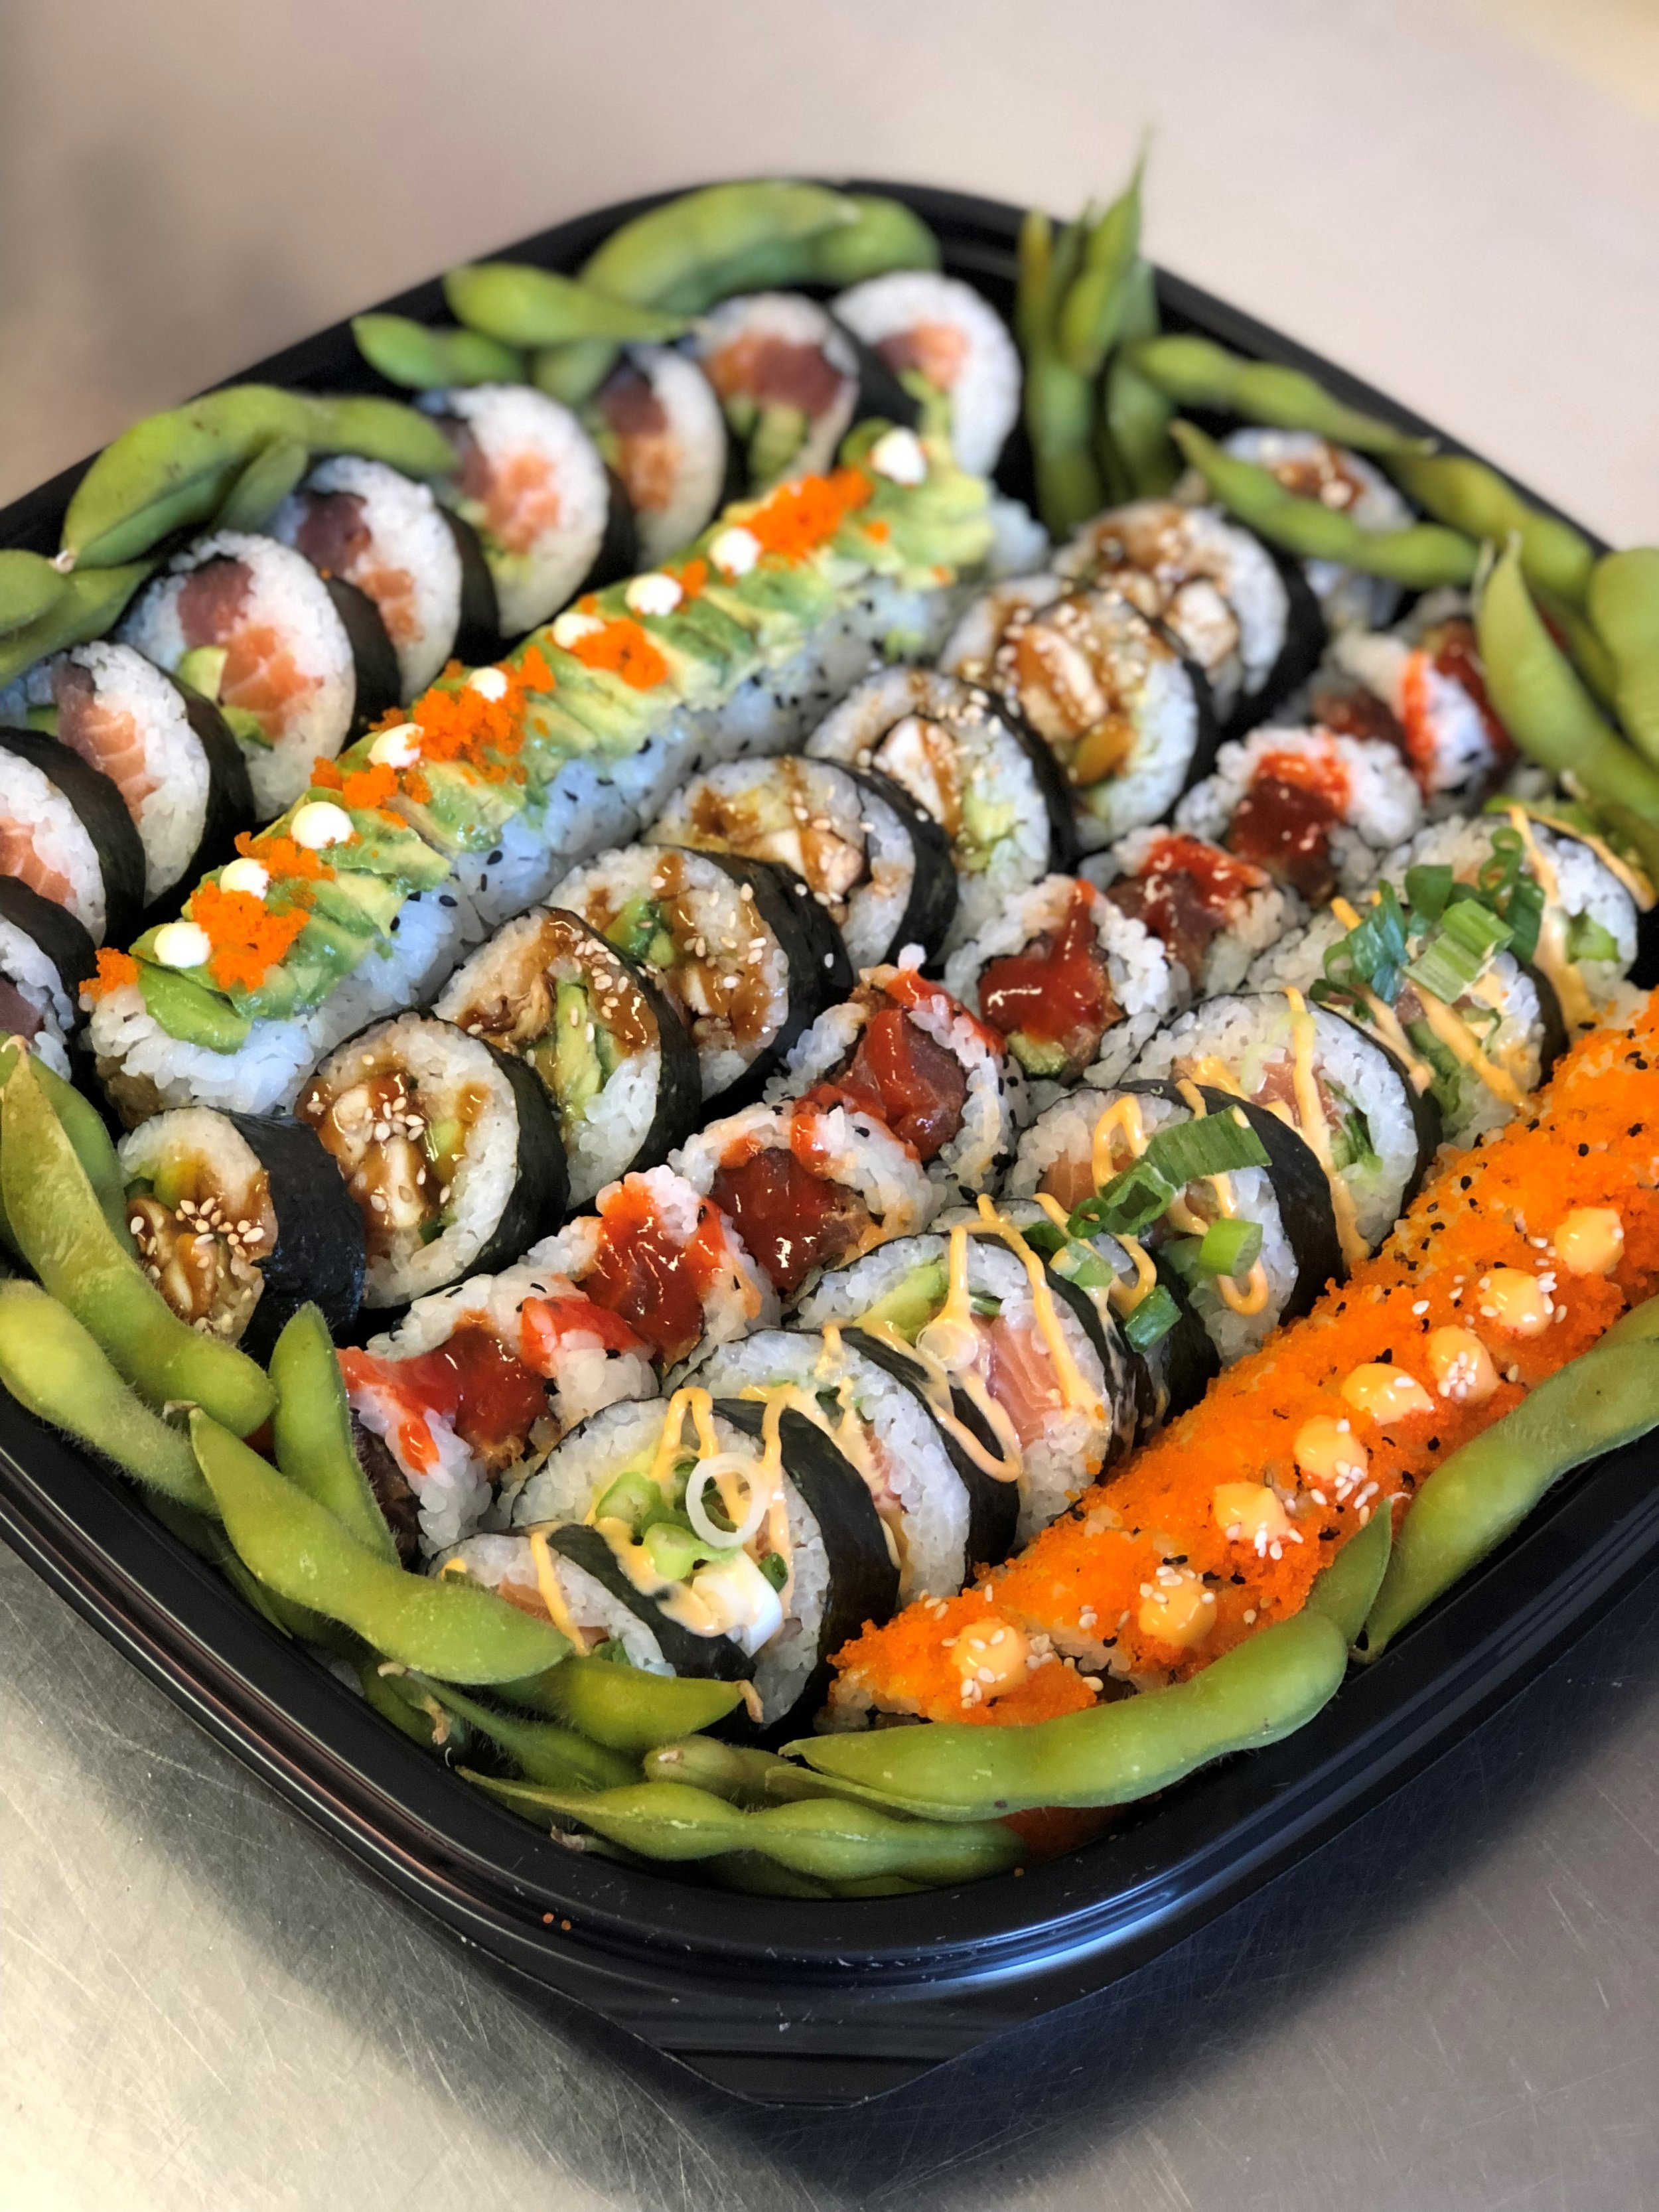 The Deluxe Futomaki Platter - £45   contains rainbow futomaki roll, deluxe caterpillar roll, chicken teriyaki futomaki, spicy tuna roll, spicy salmon roll, tobiko salmon with spicy mayo, edamame   contains gluten